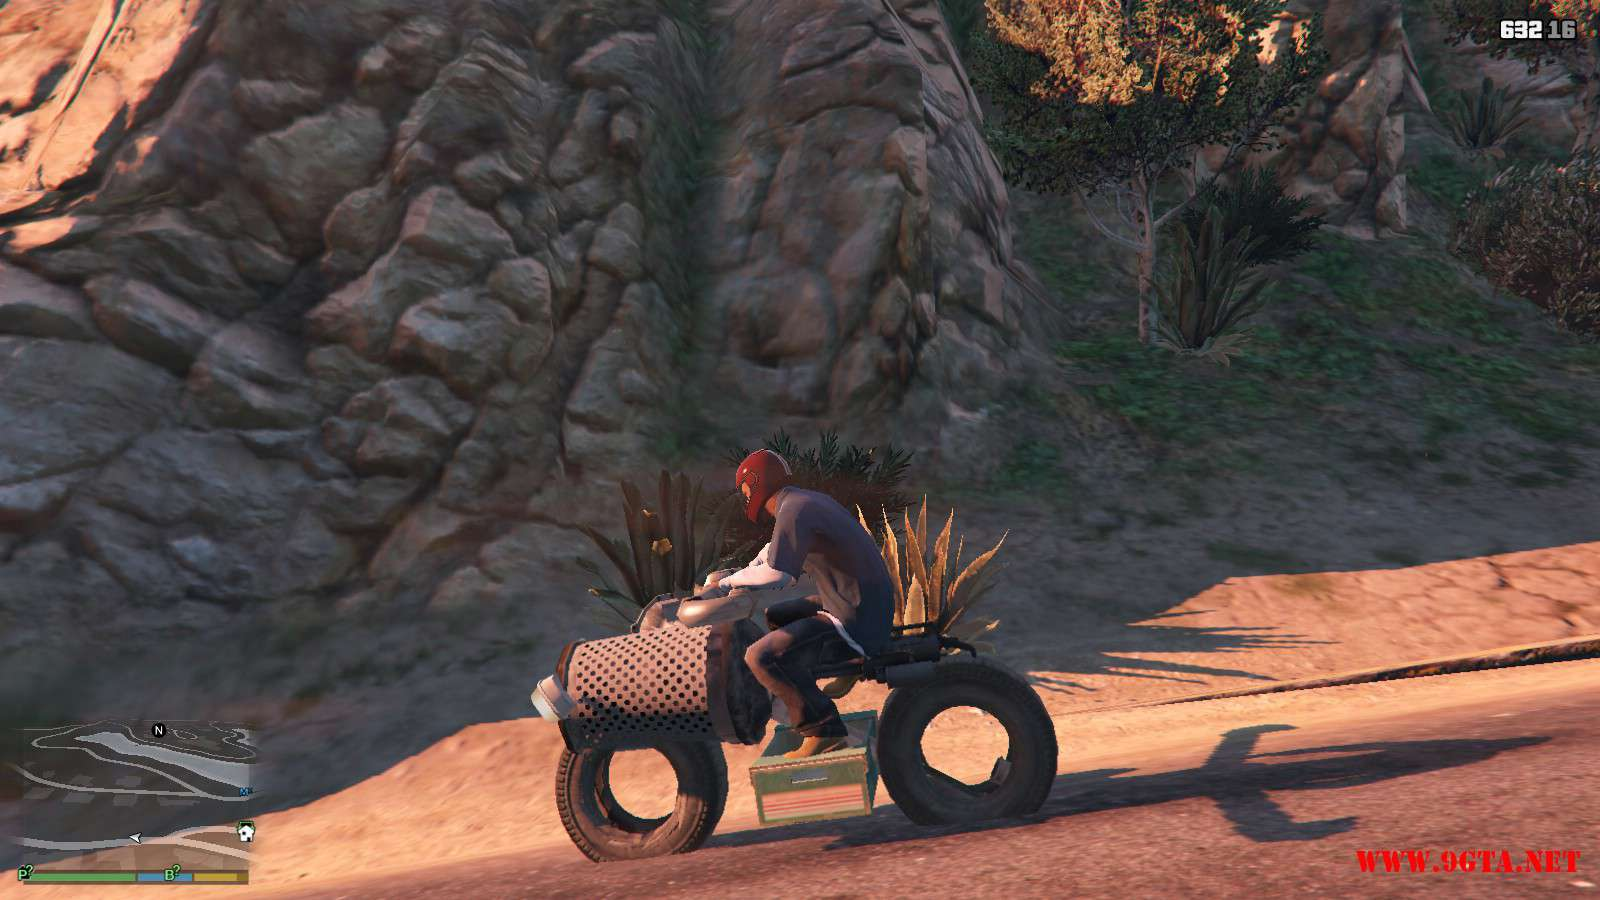 The Speed Bike GTA5 Mods (2)